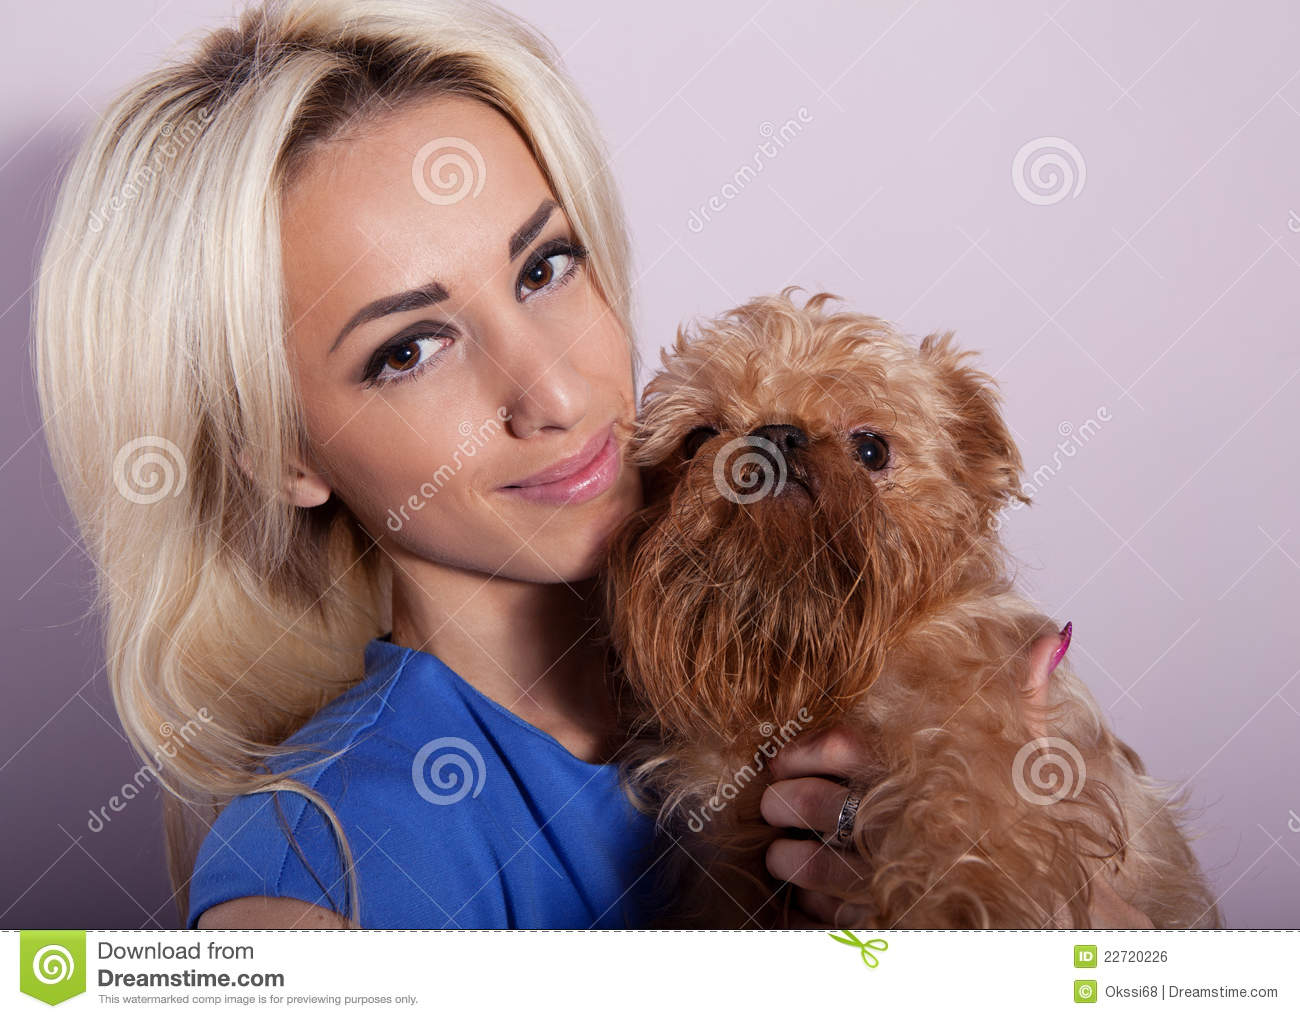 Young woman with a dog breed Griffon Bruxellois.